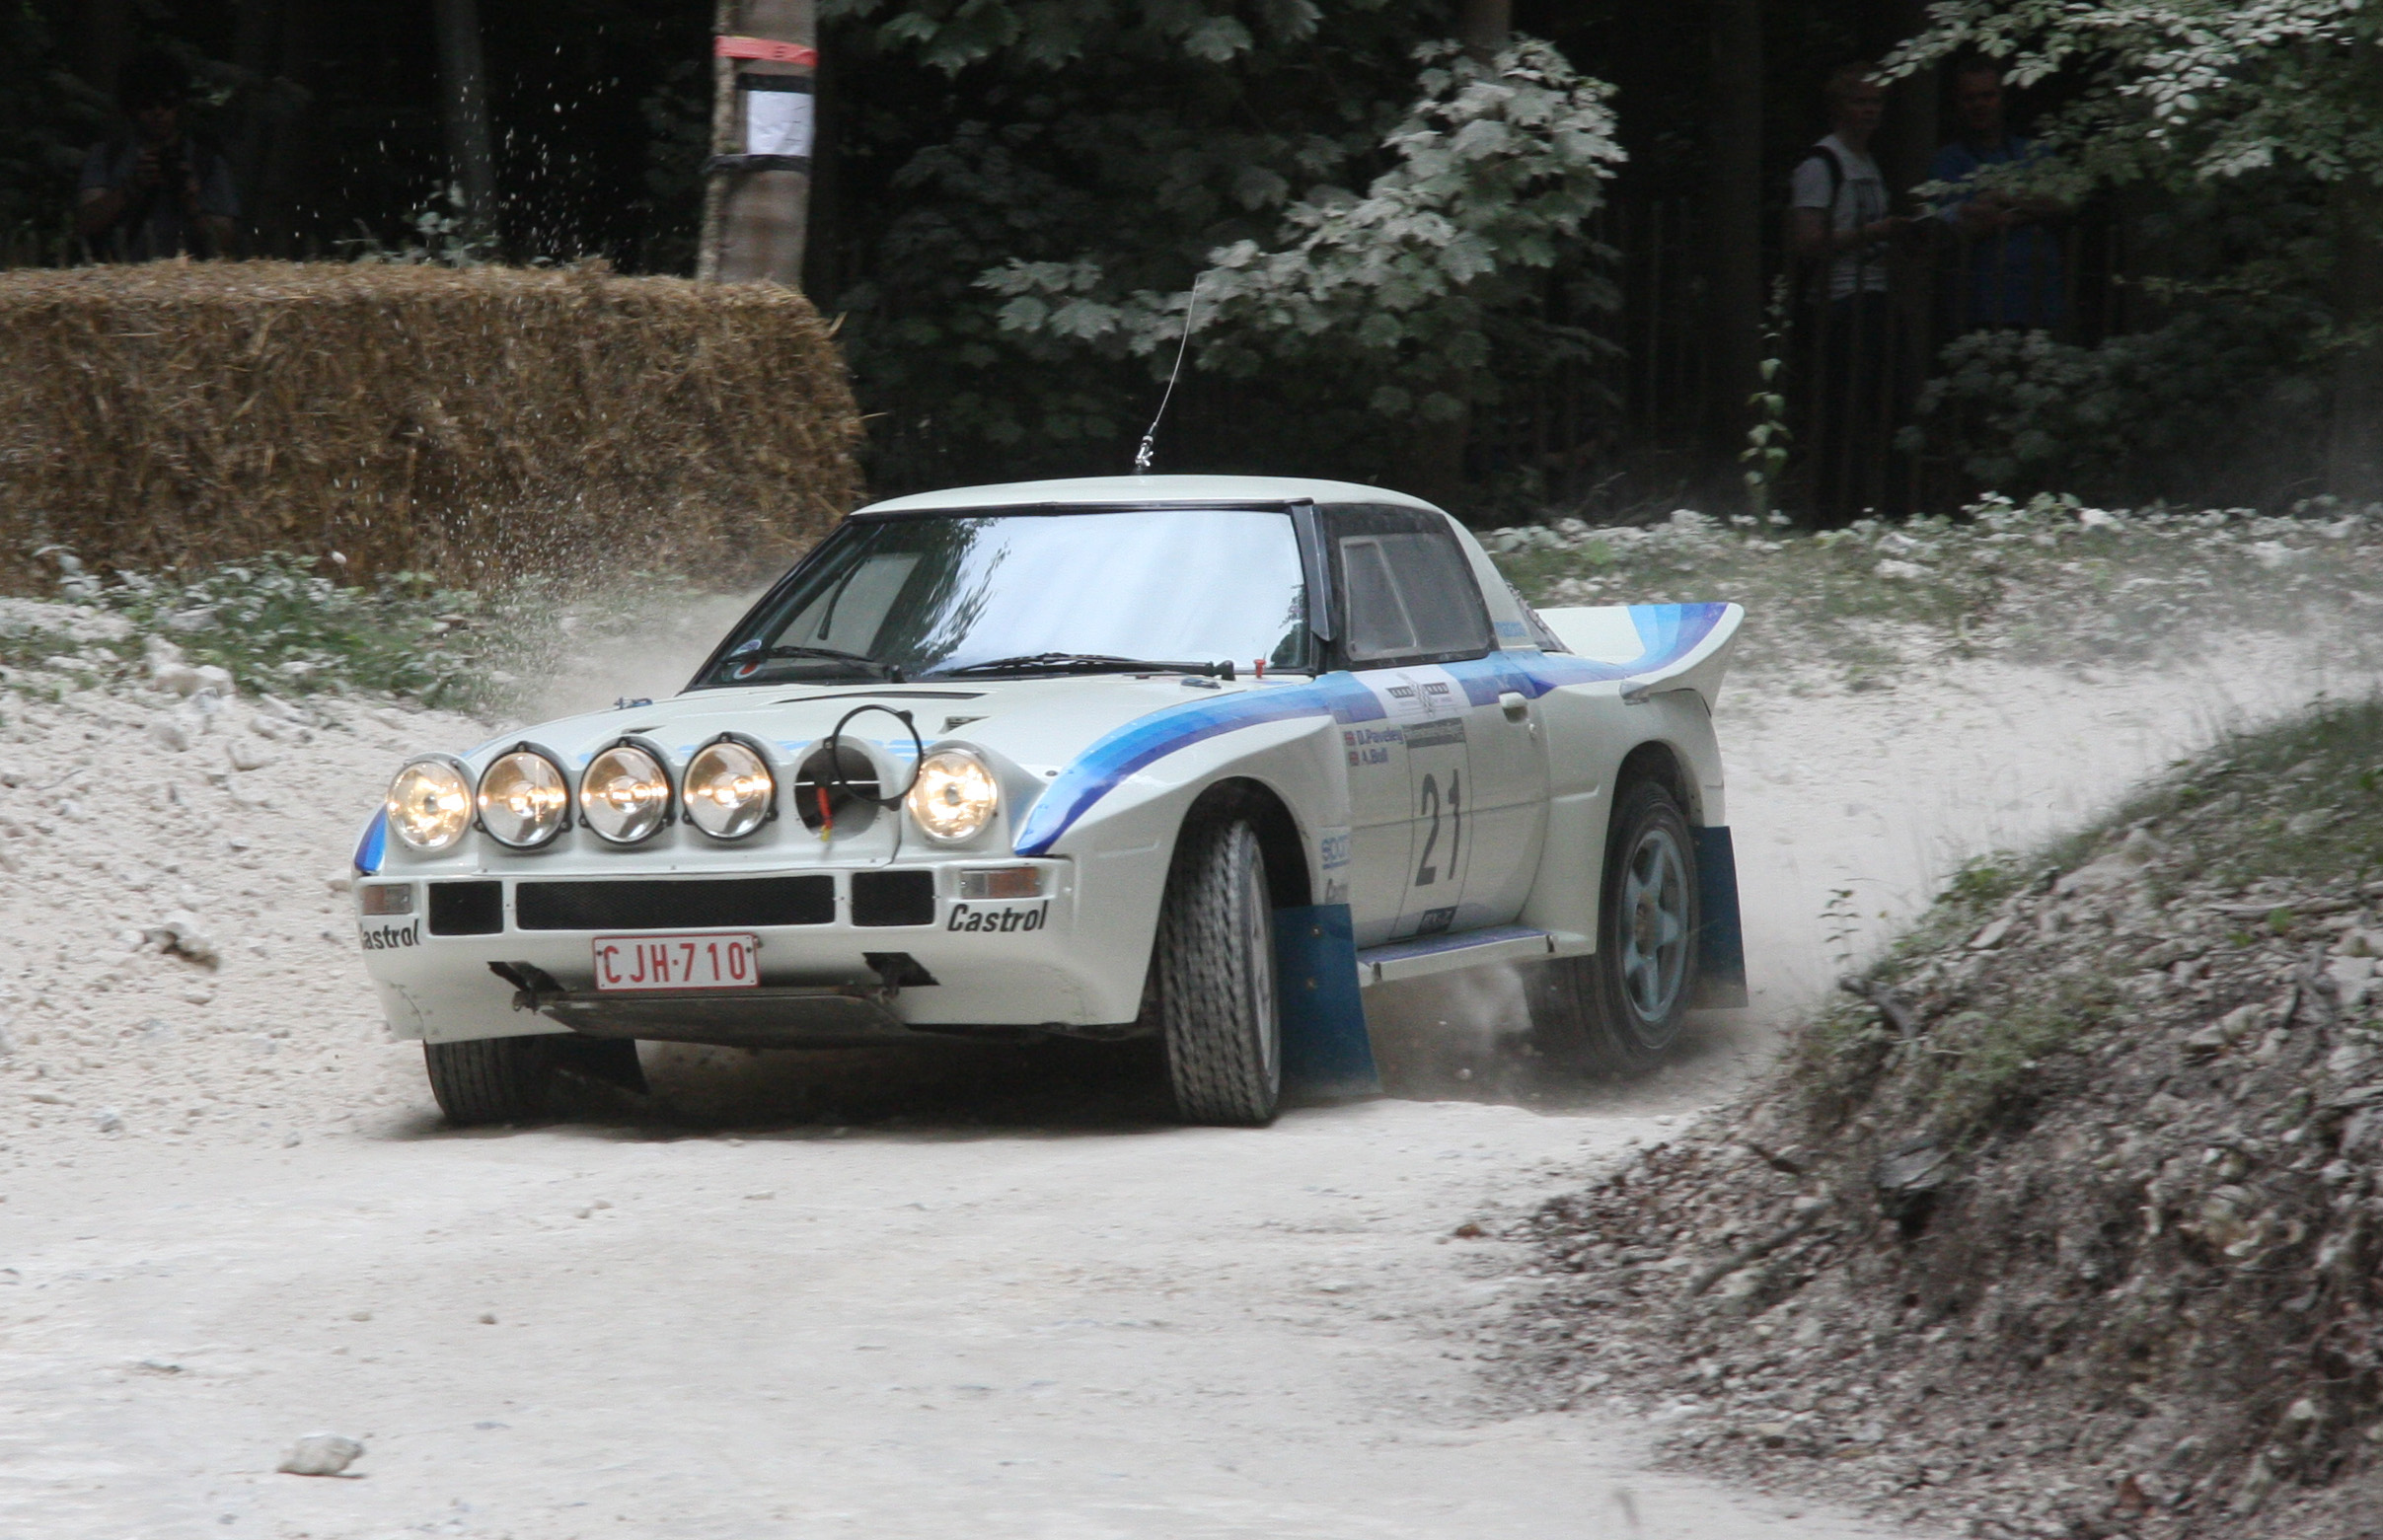 File:Mazda RX7 Group B - Flickr - exfordy.jpg - Wikimedia Commons